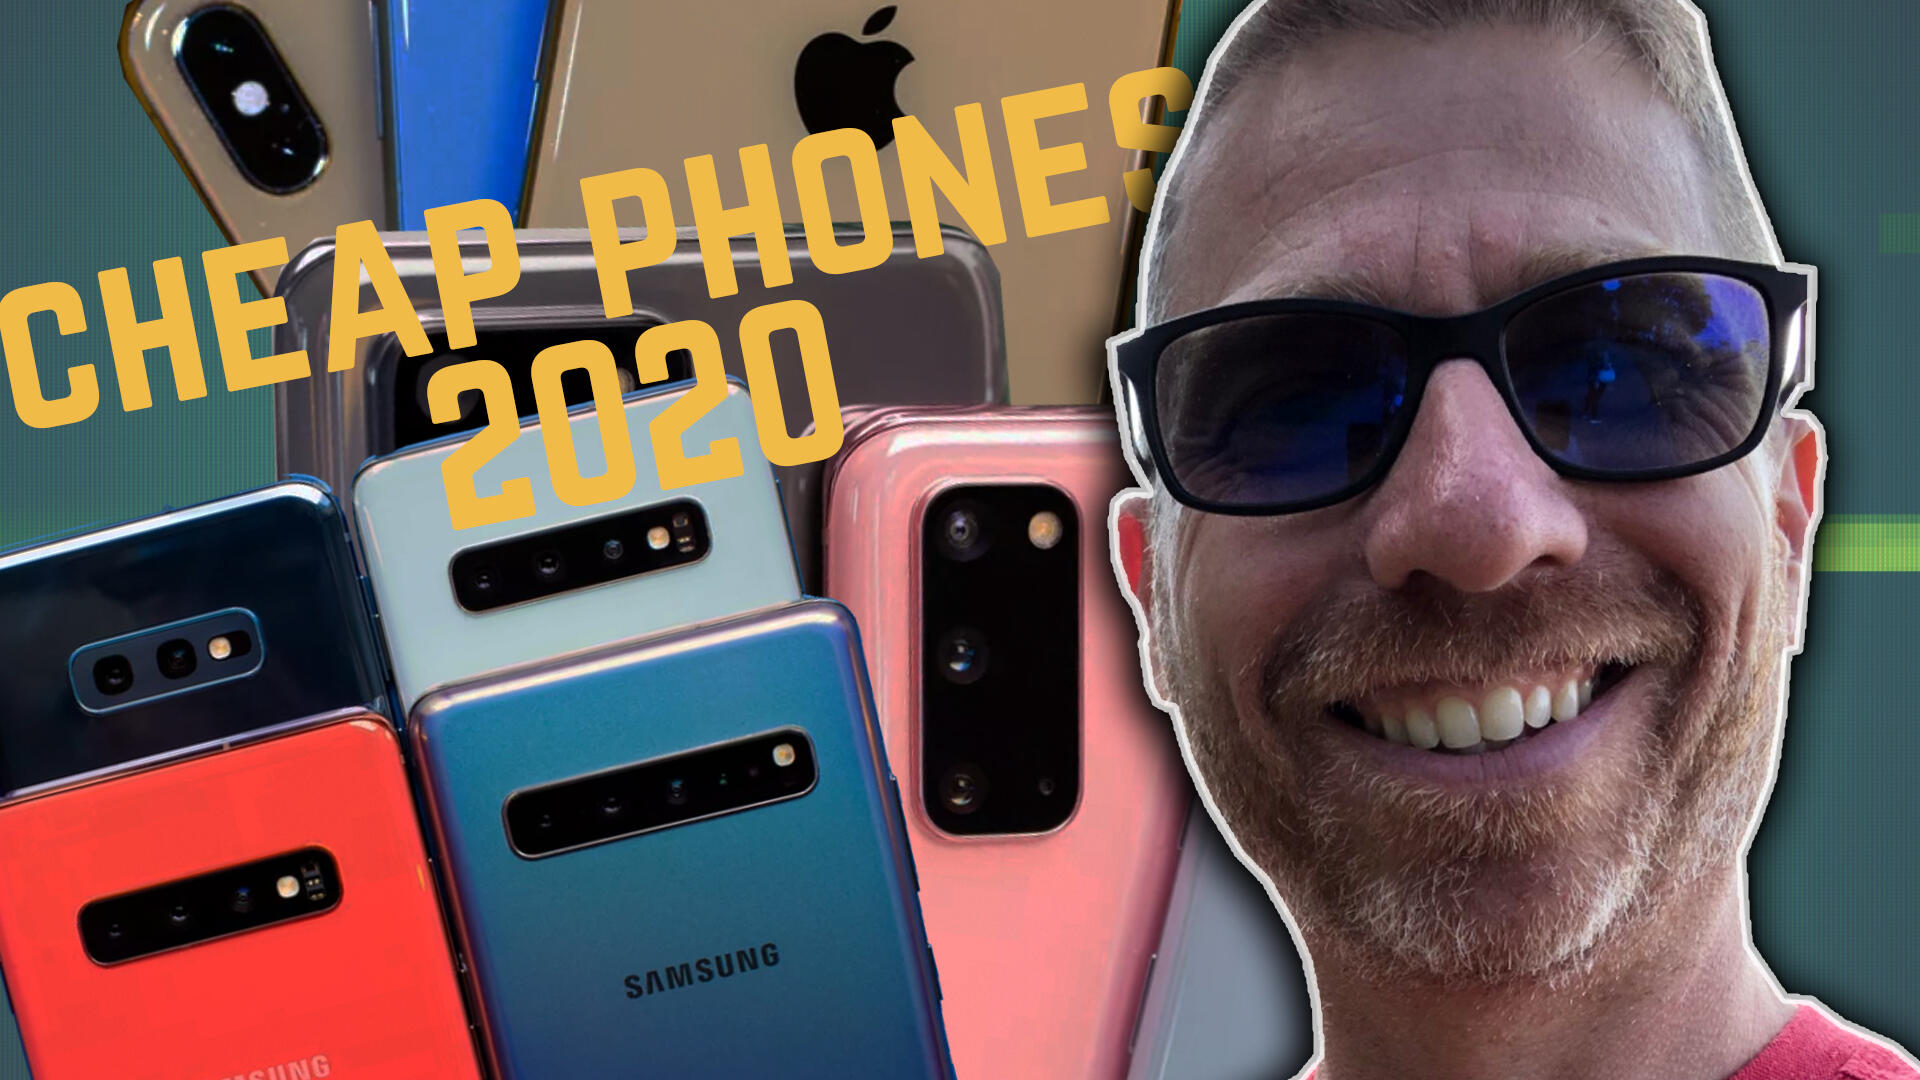 Video: The Galaxy S20 is coming, but here are the best deals